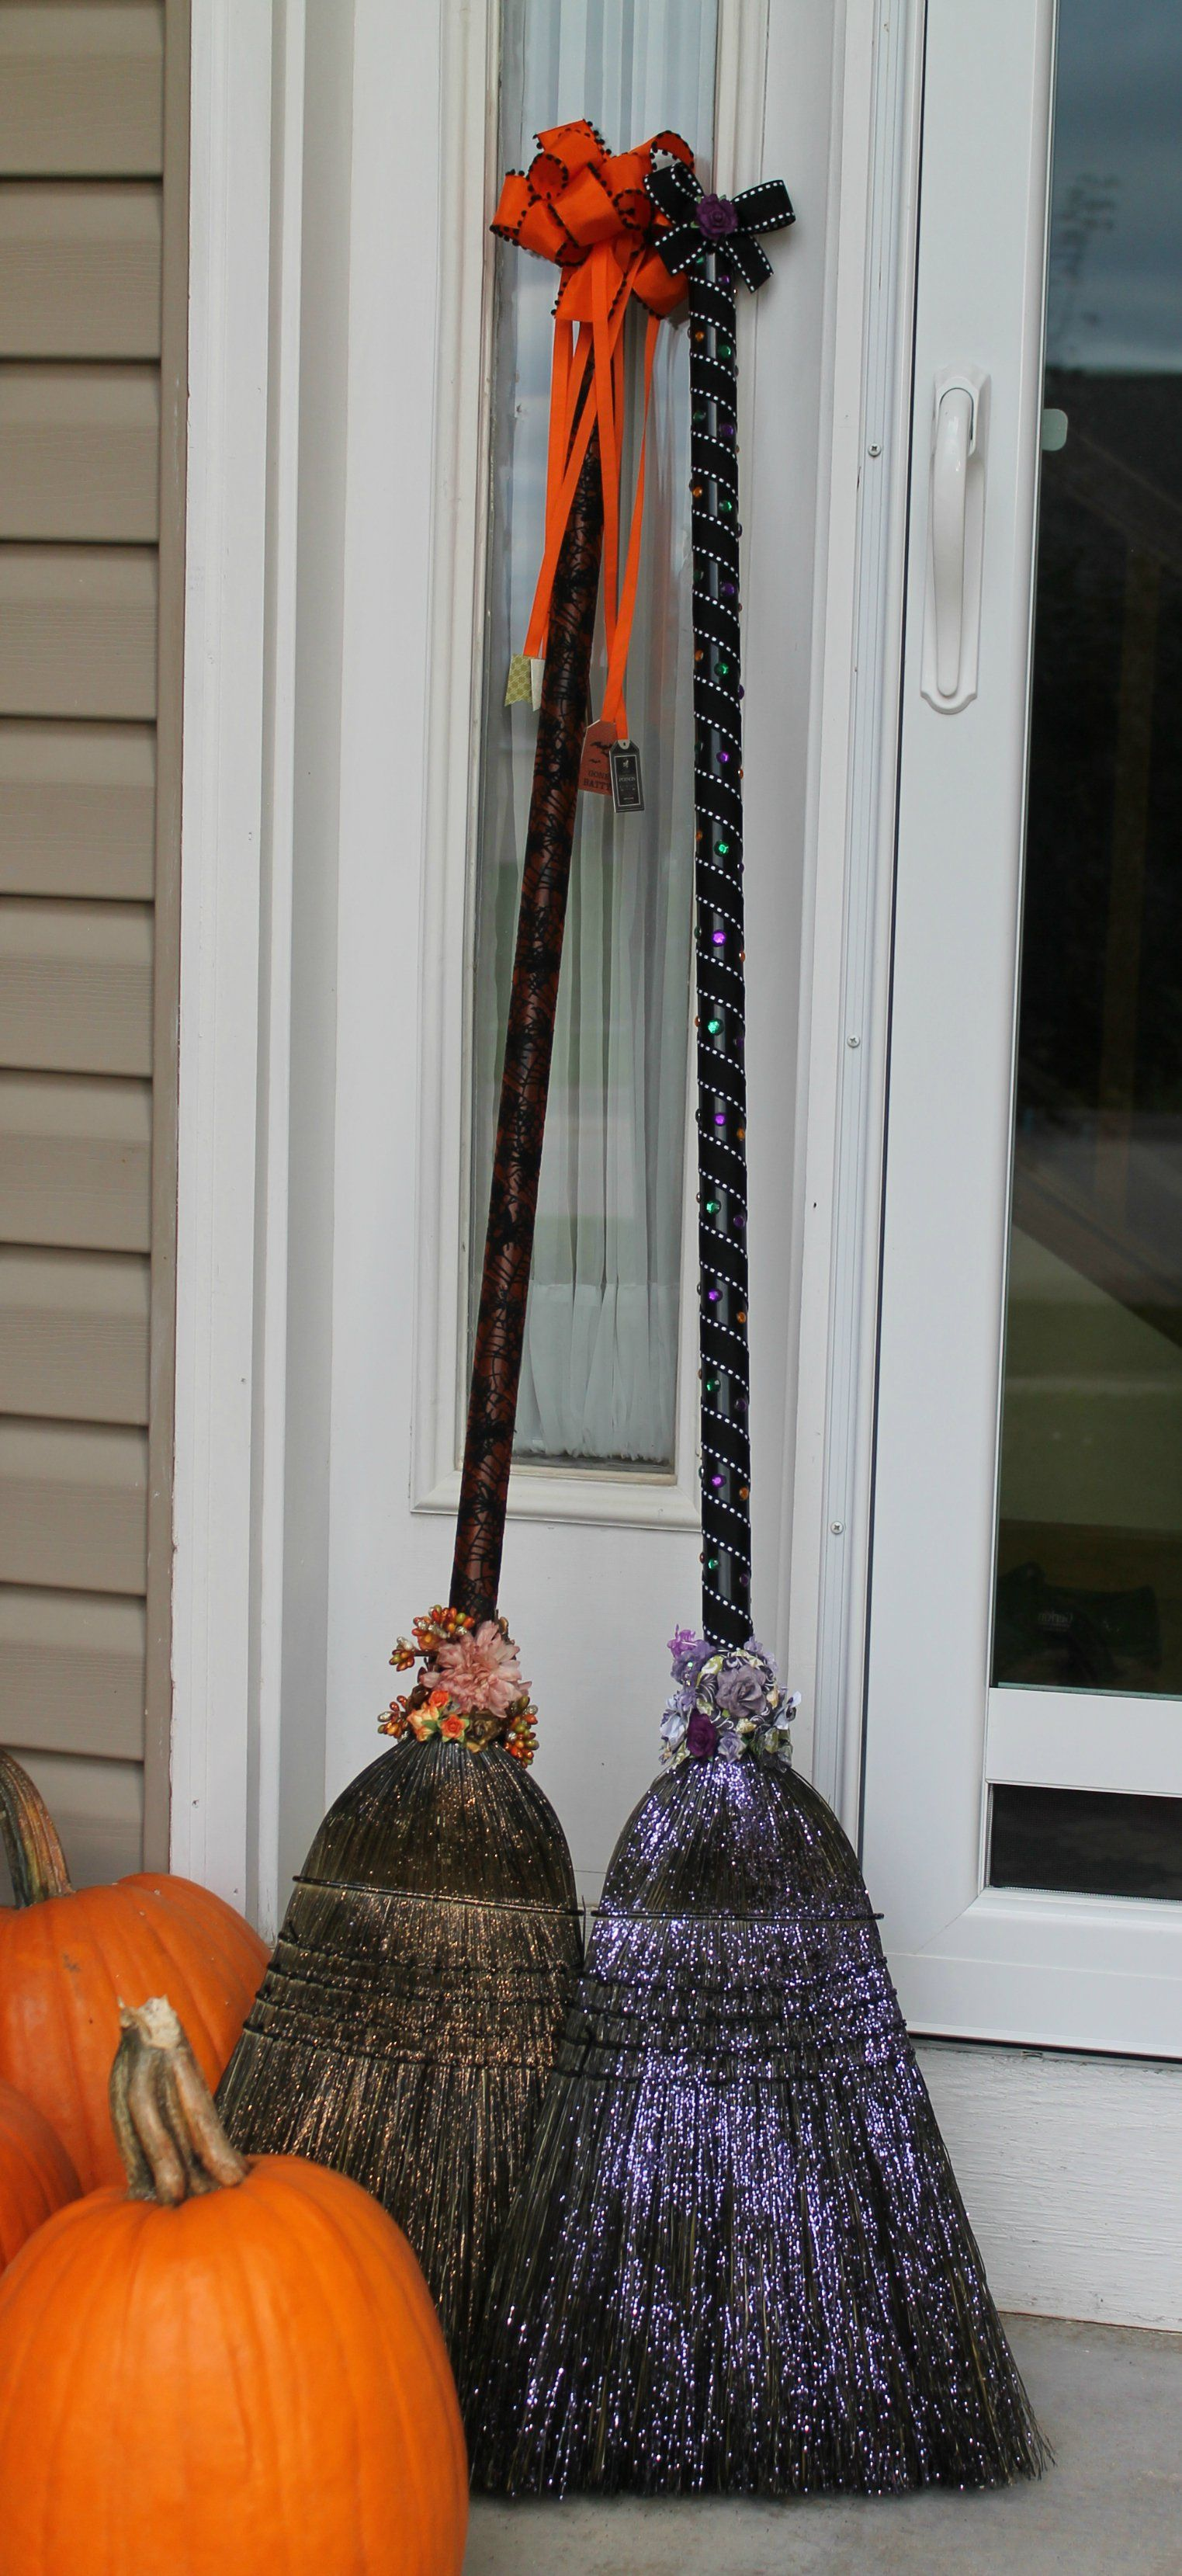 Halloween Decor Hacks Witch broom, Witches and Holidays - Decorating For Halloween